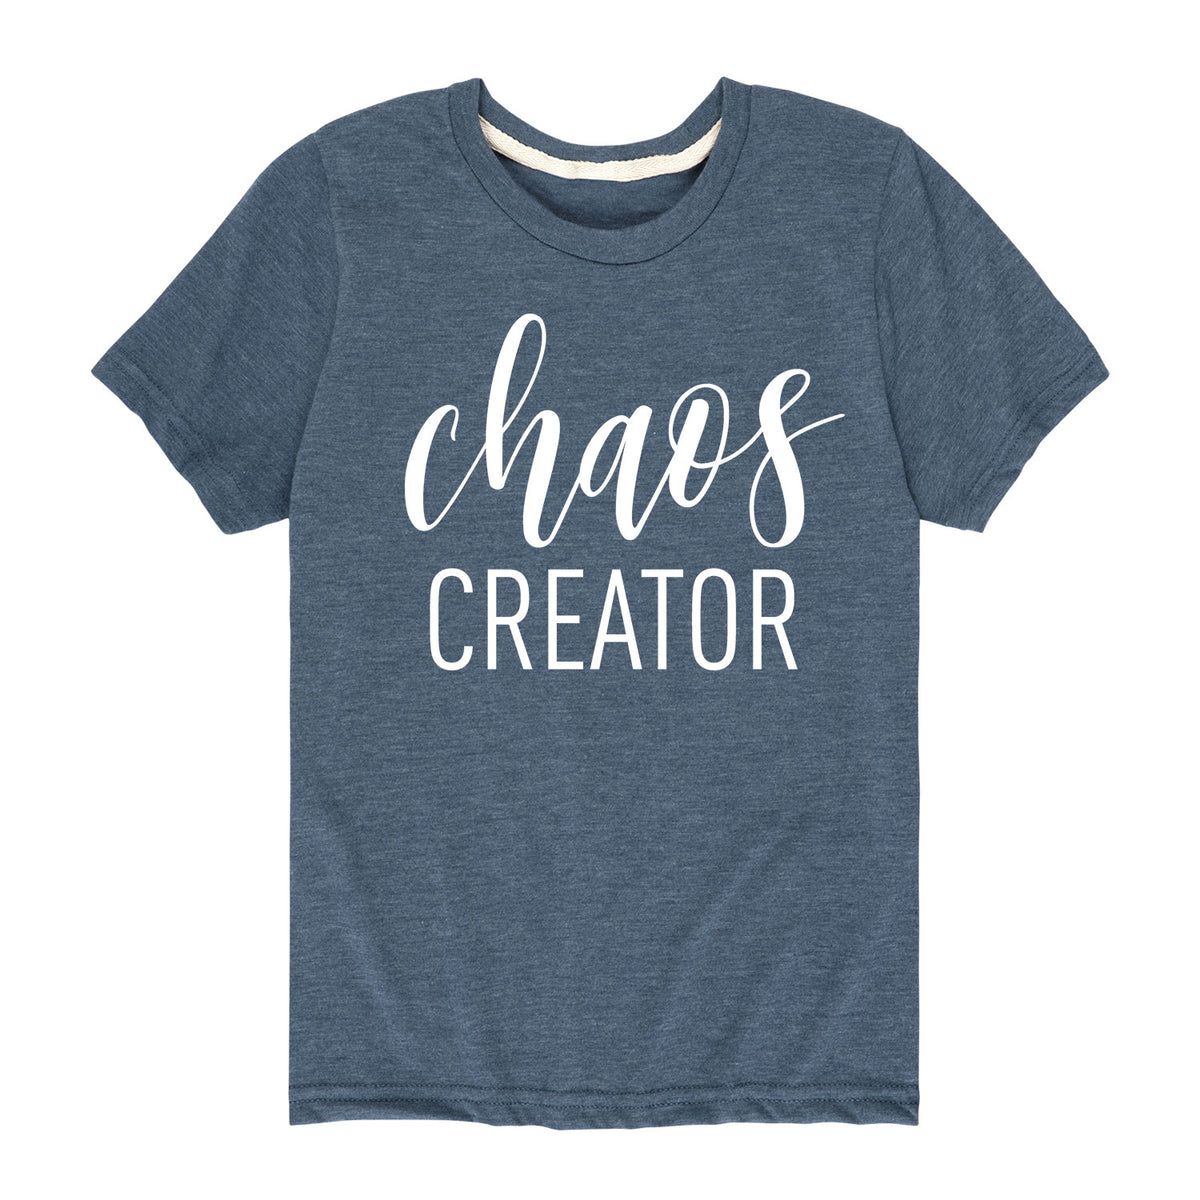 Chaos Creator - Youth & Toddler Short Sleeve T-Shirt